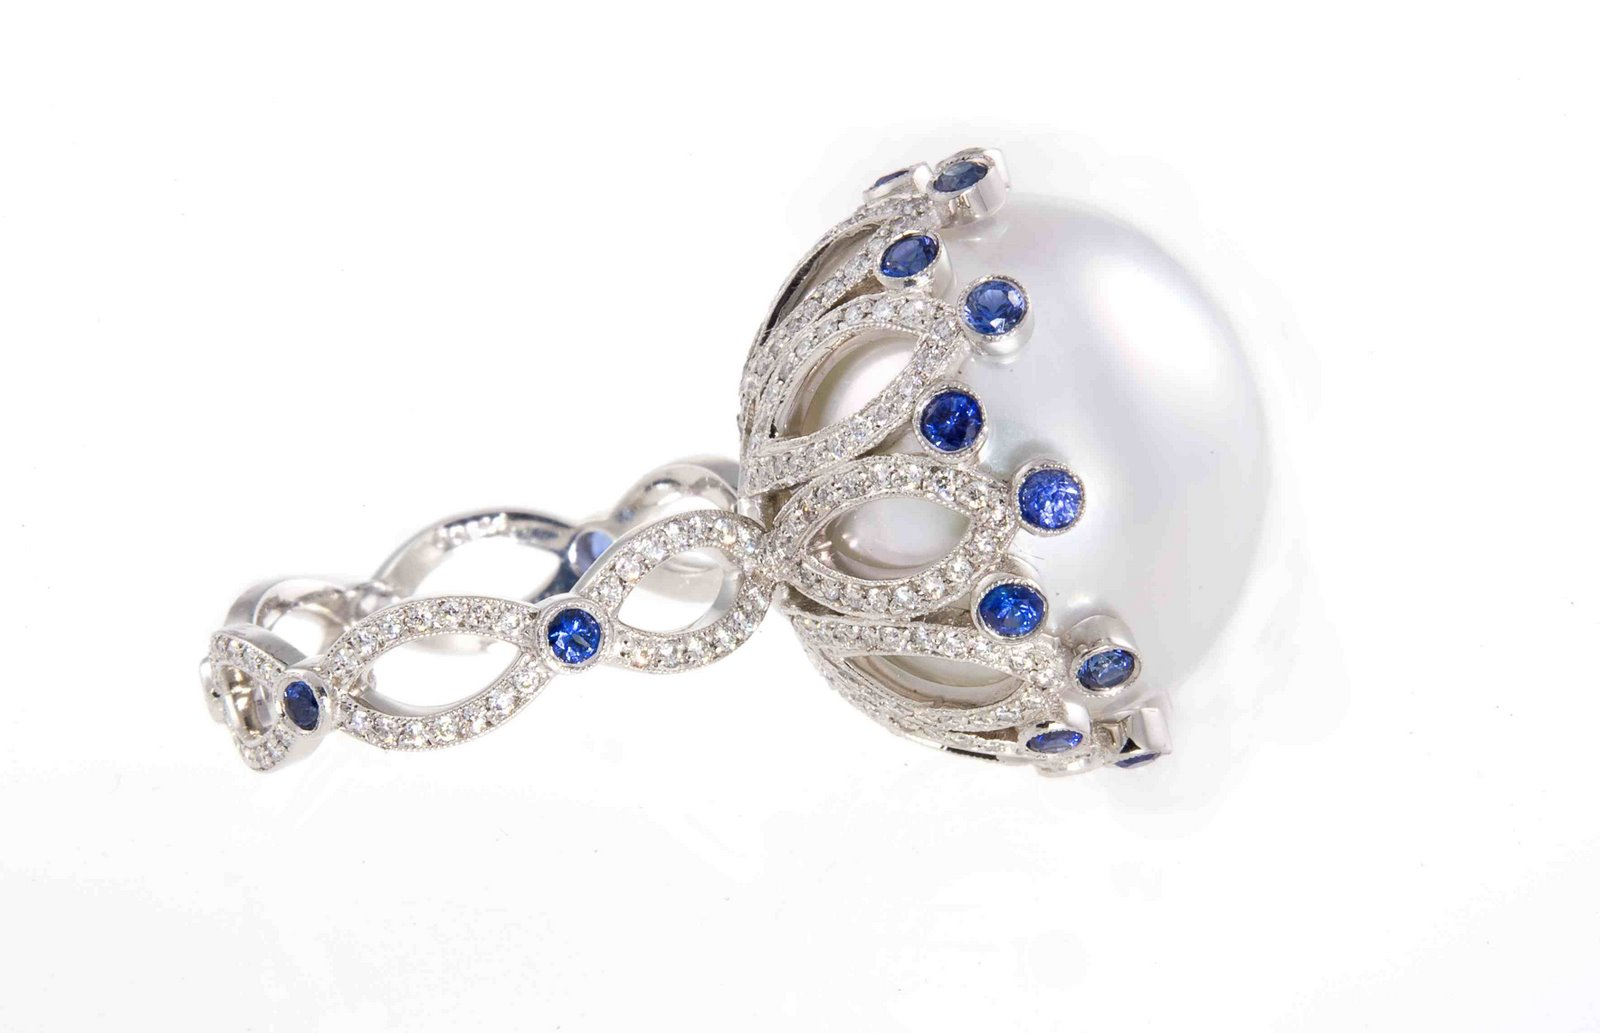 Erica Courtney Platinum, Pearl And Diamond Ring With Sapphire Claw Setting